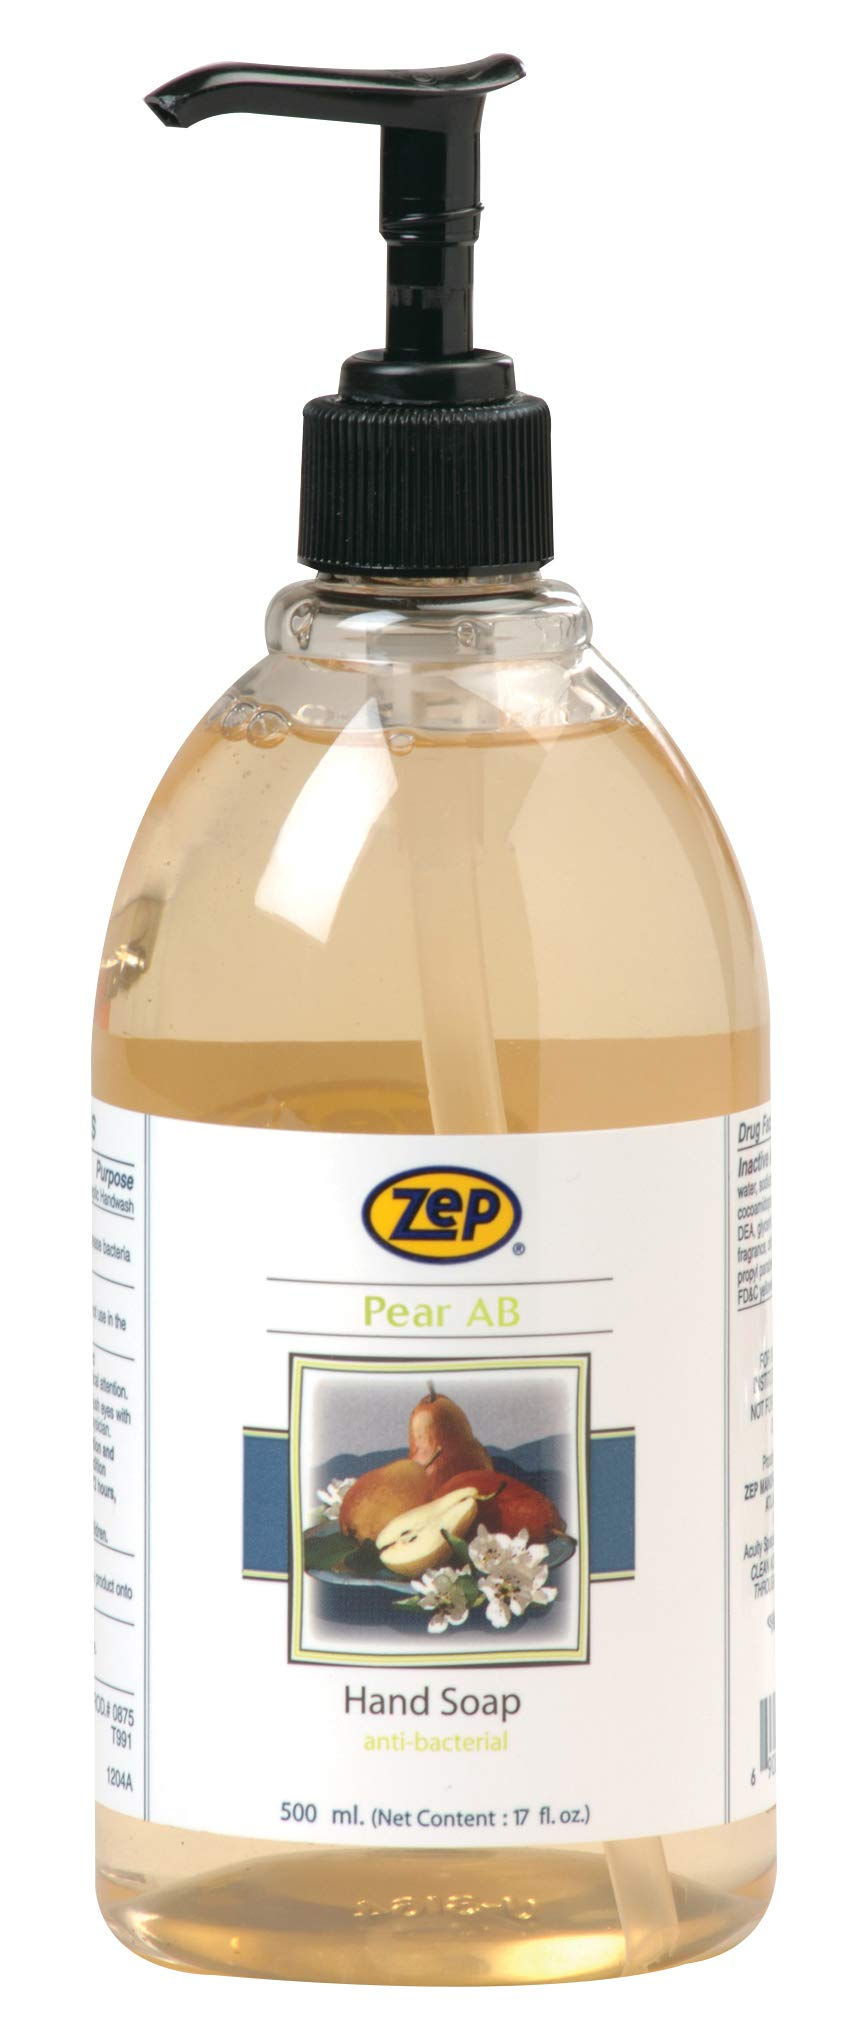 Zep Pear Antibacterial Hand Soap - 500 ml - Case of 12 Janitorial Supplies - Cleanflow